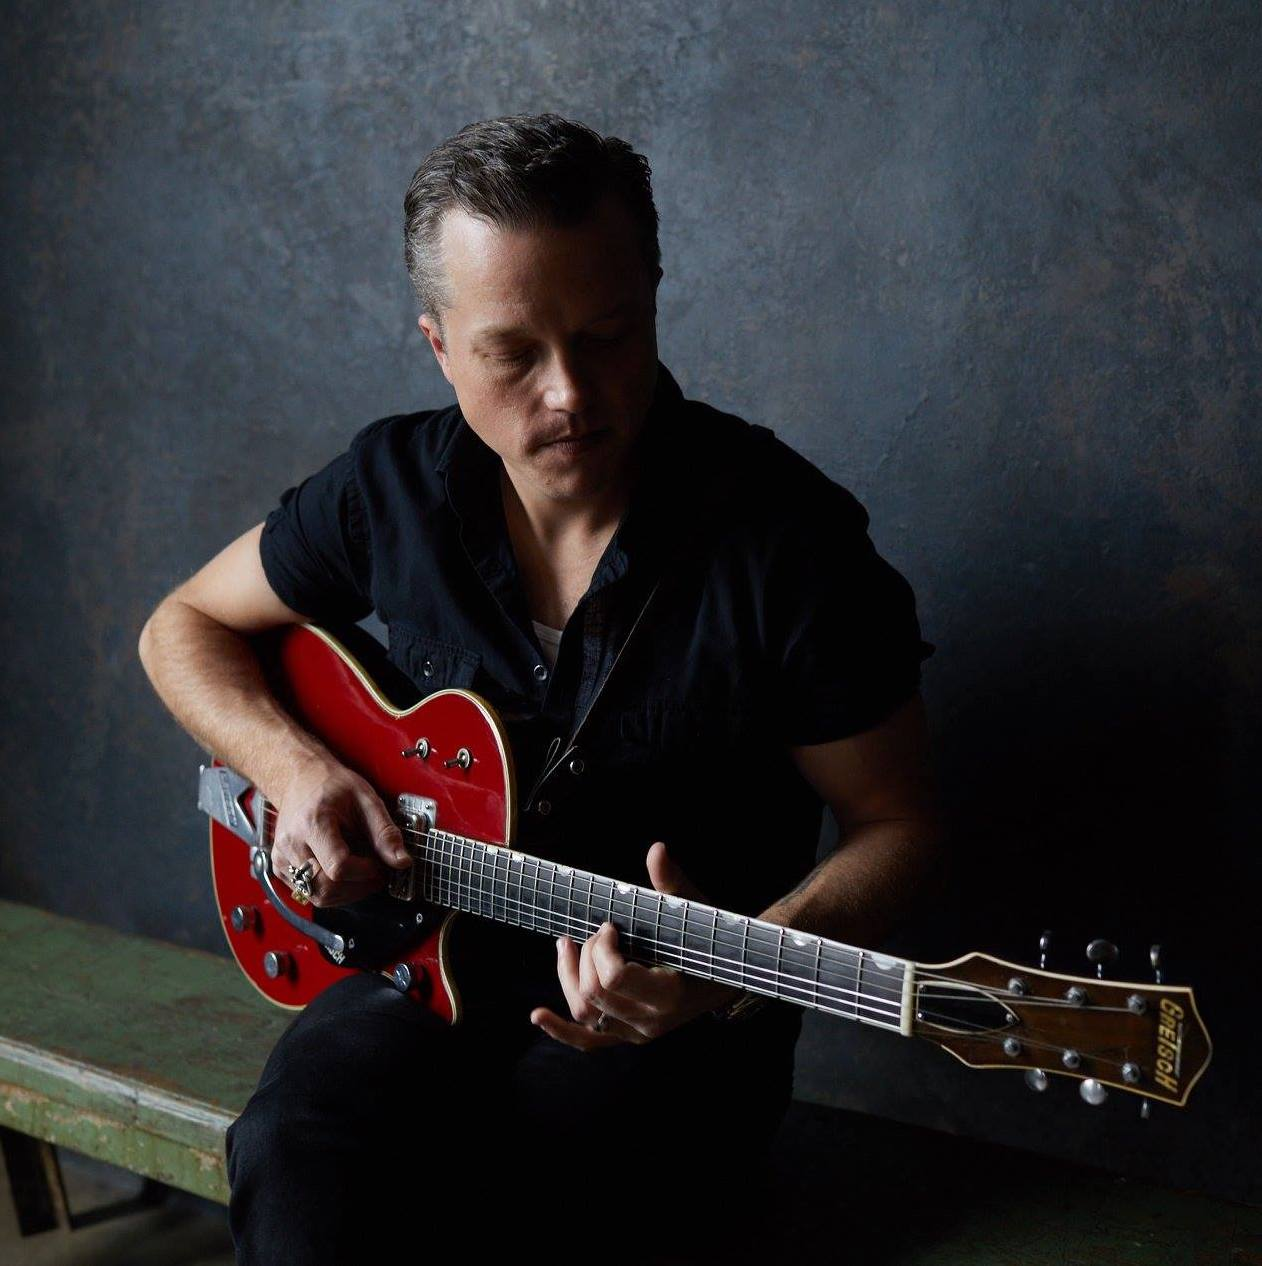 Jason Isbell playing guitar